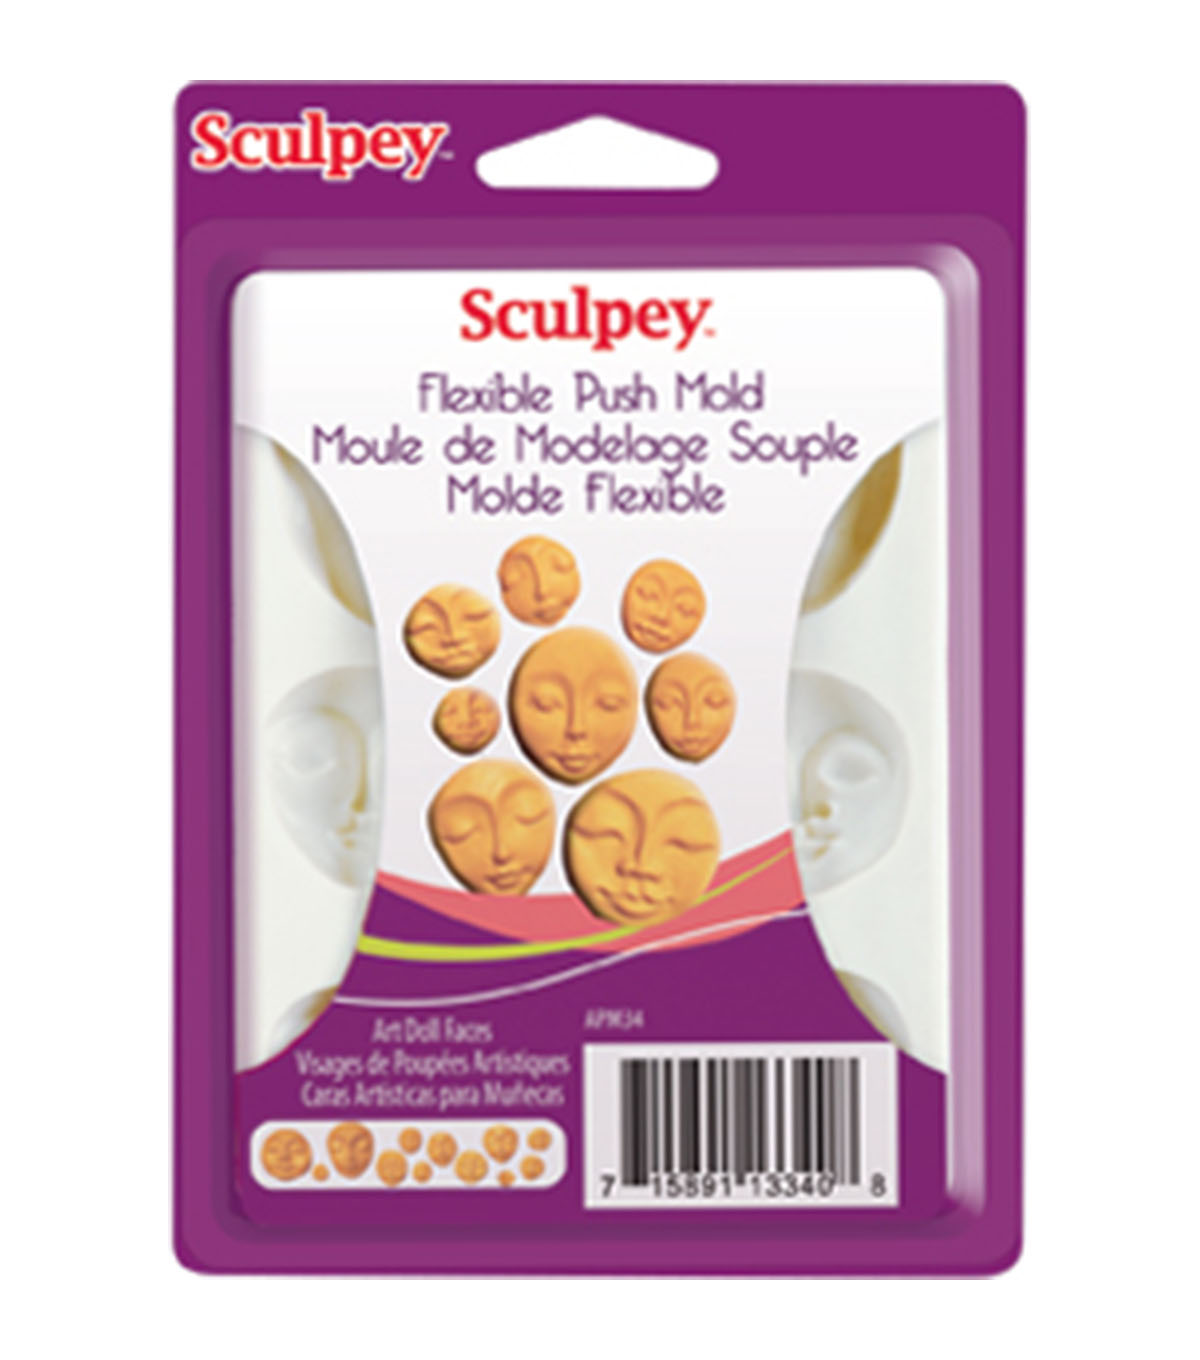 Sculpey Flexible Push Mold-White Art Doll Faces